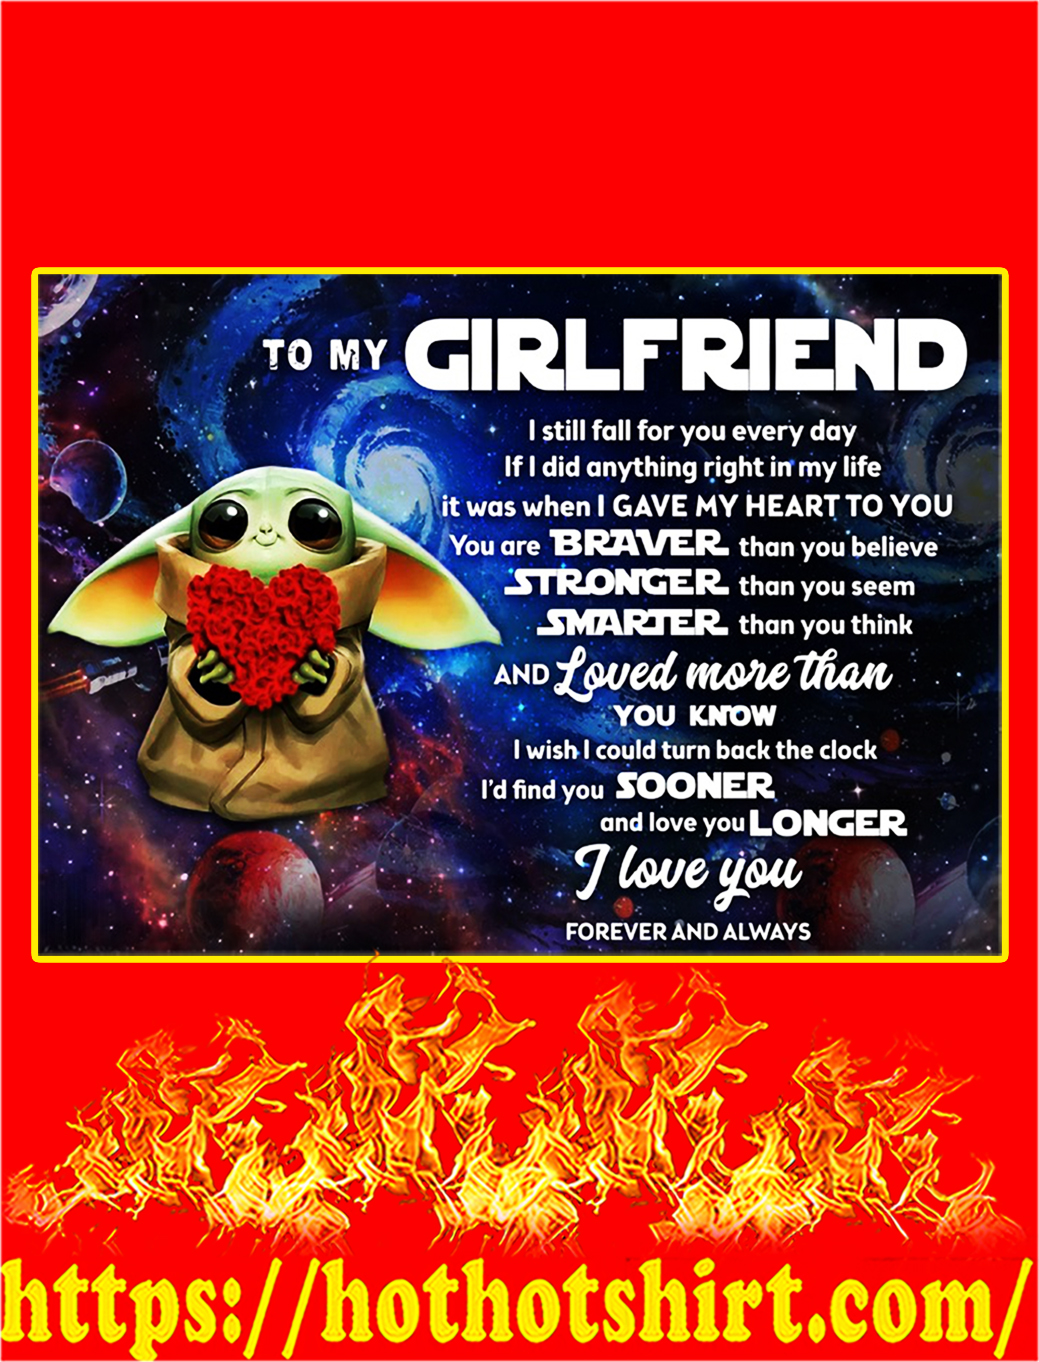 Baby yoda to my girlfriend poster - A2